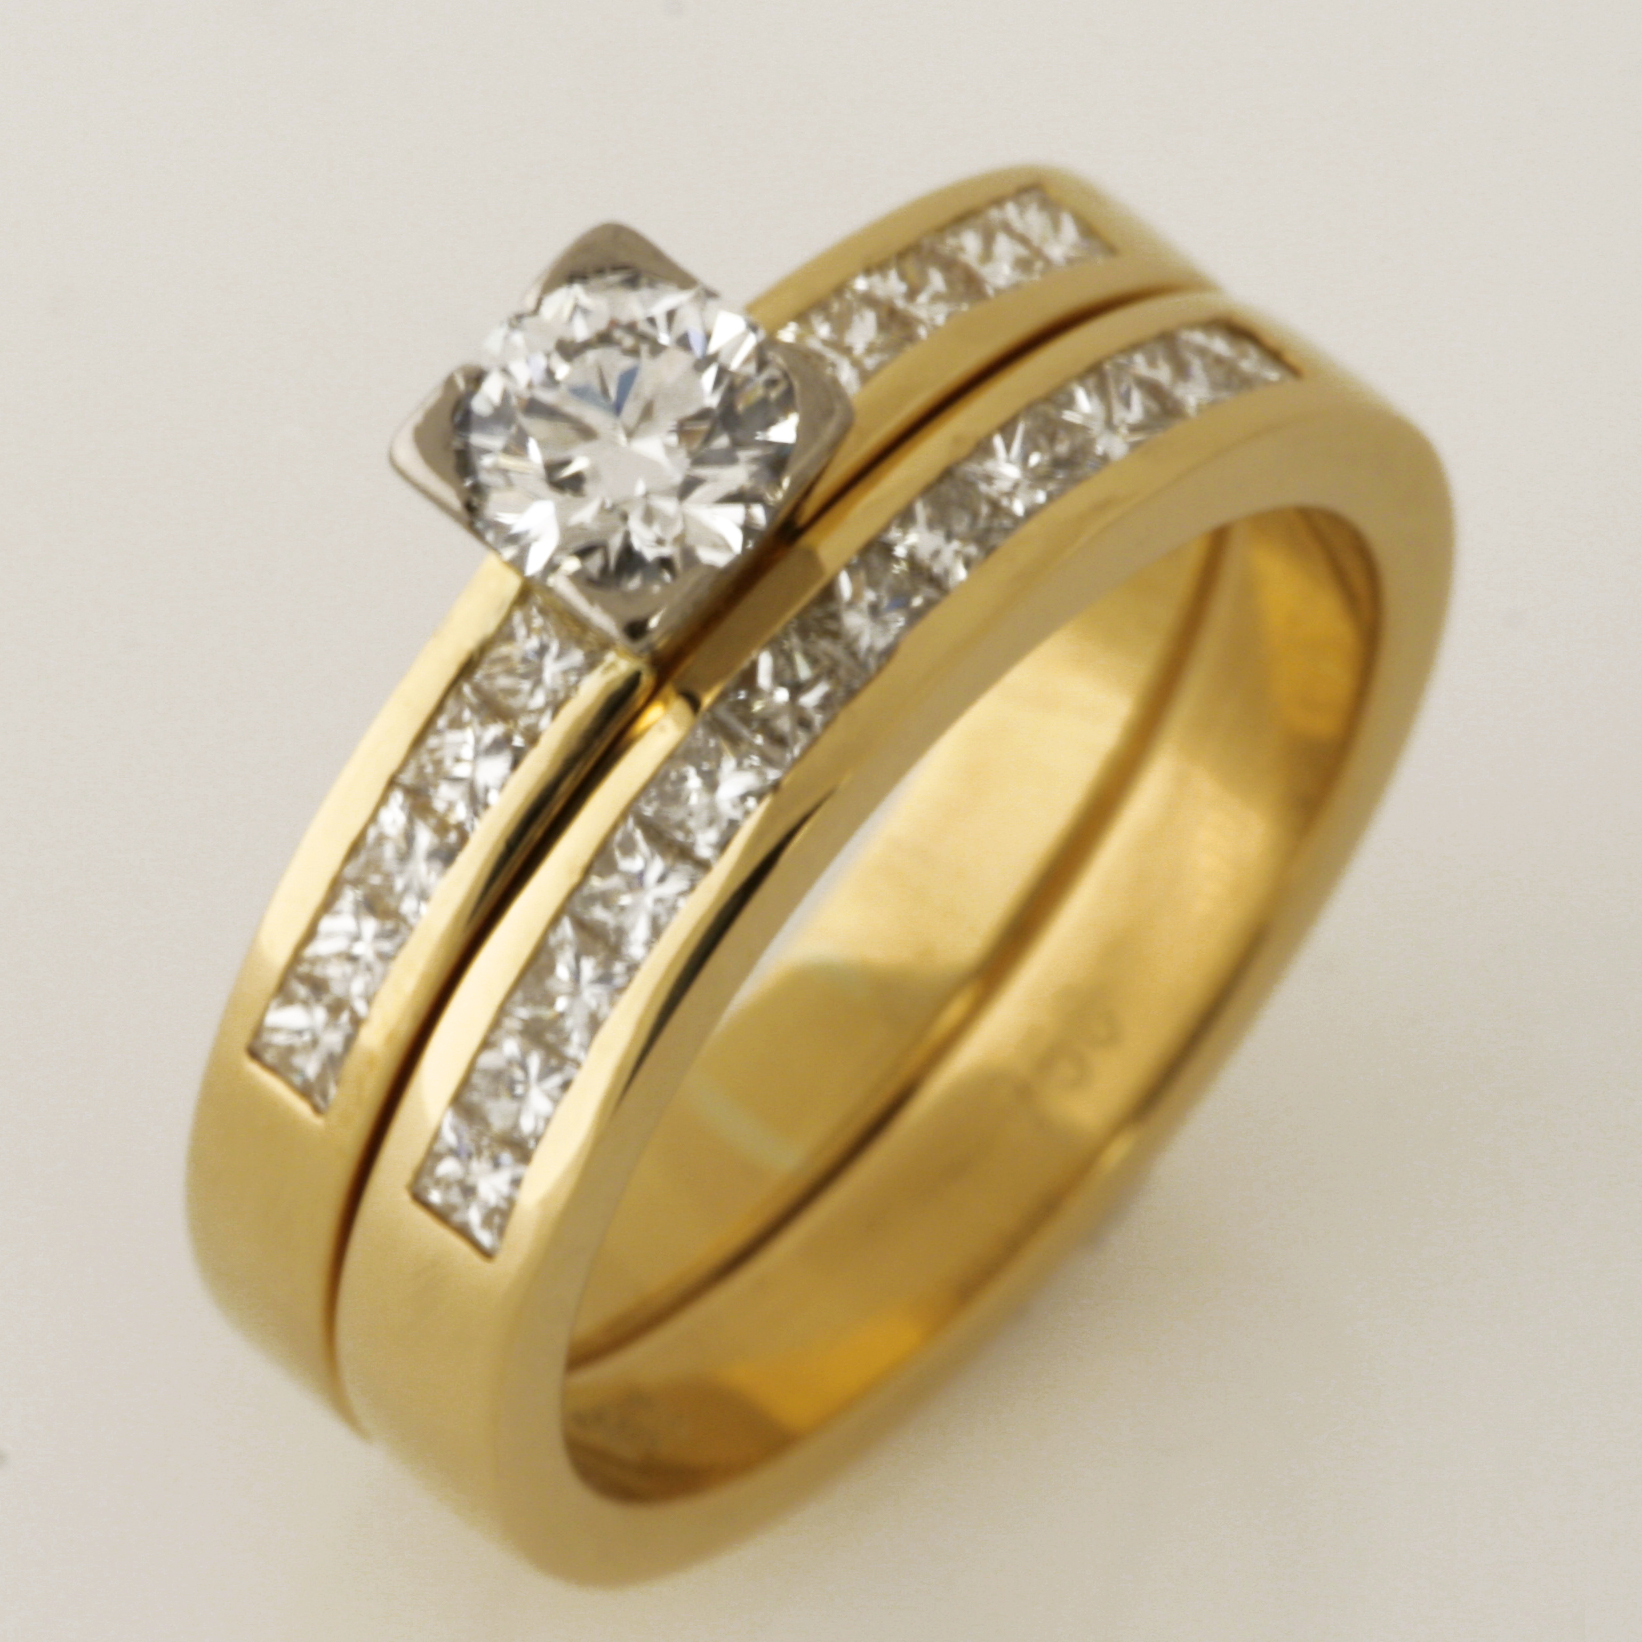 Handmade ladies 18ct yellow gold diamond wedding and engagement ring set